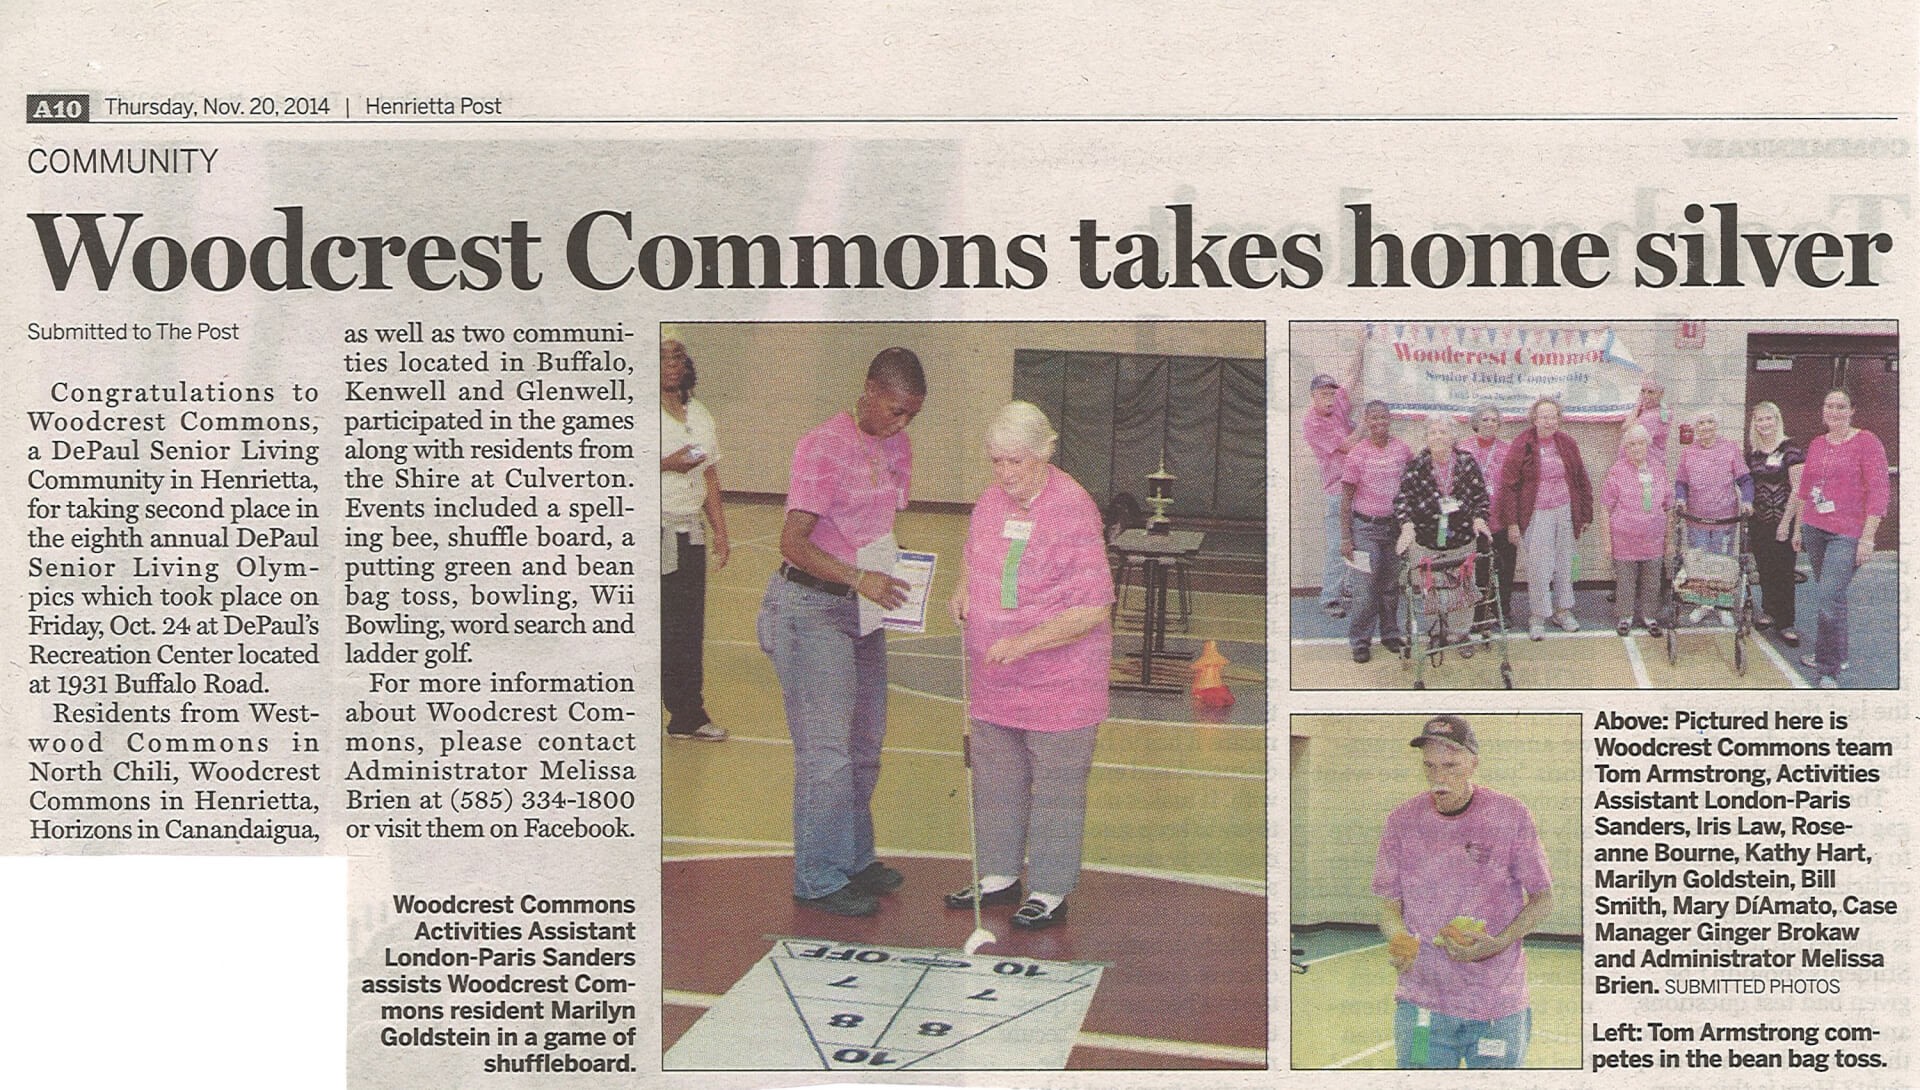 Woodcrest Commons Takes Silver in Senior Olympics article in the Henrietta Post November 20, 2014